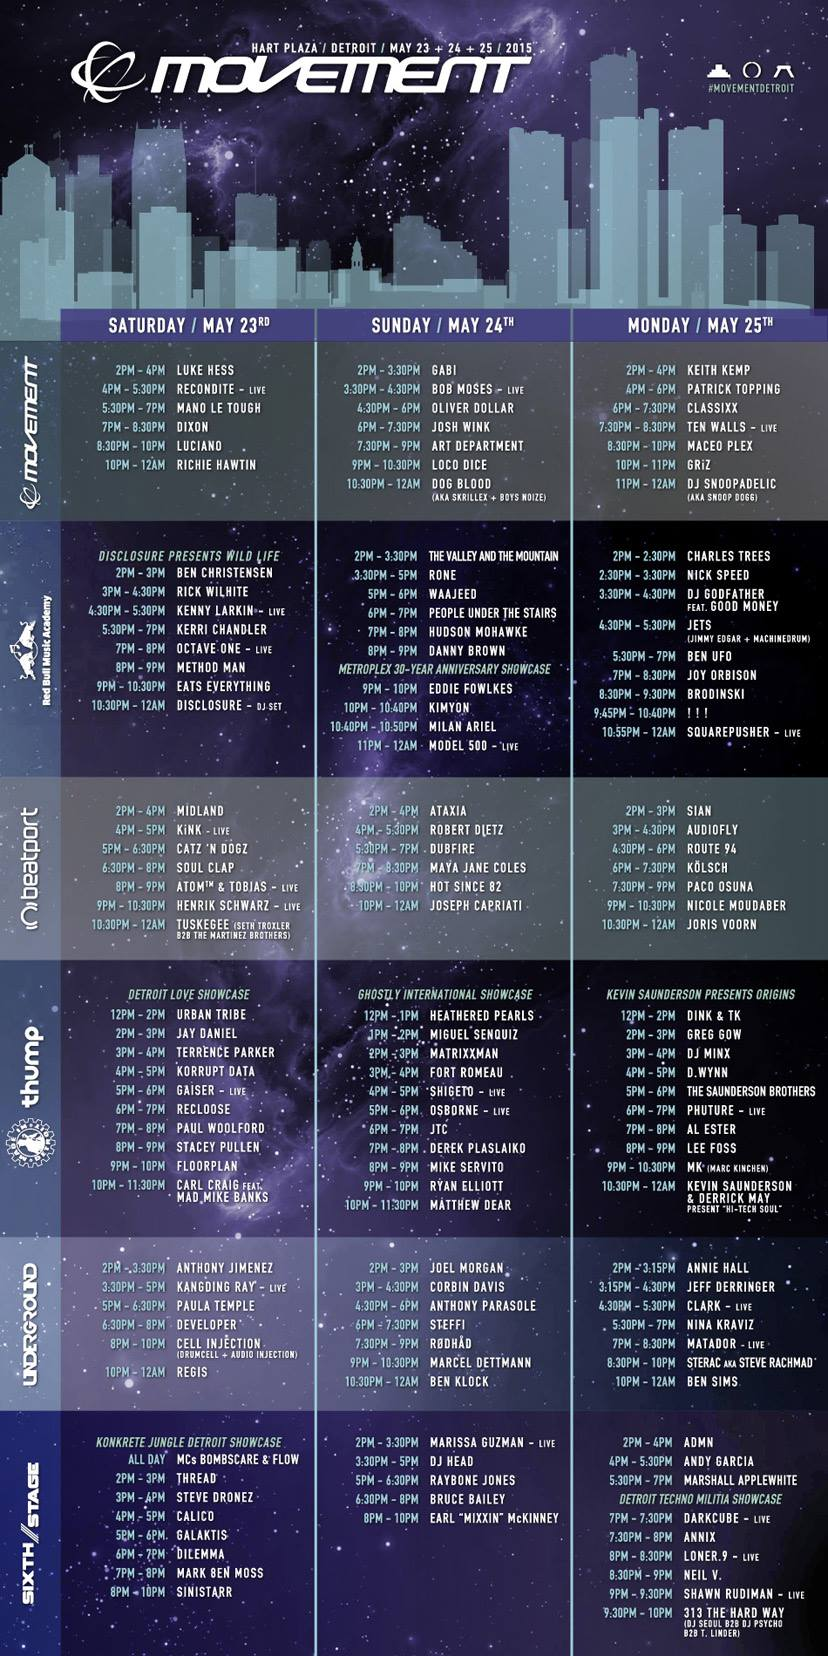 DEMF Movement Detroit Festival 2015 Stages and Lineup // DeeplyMoved